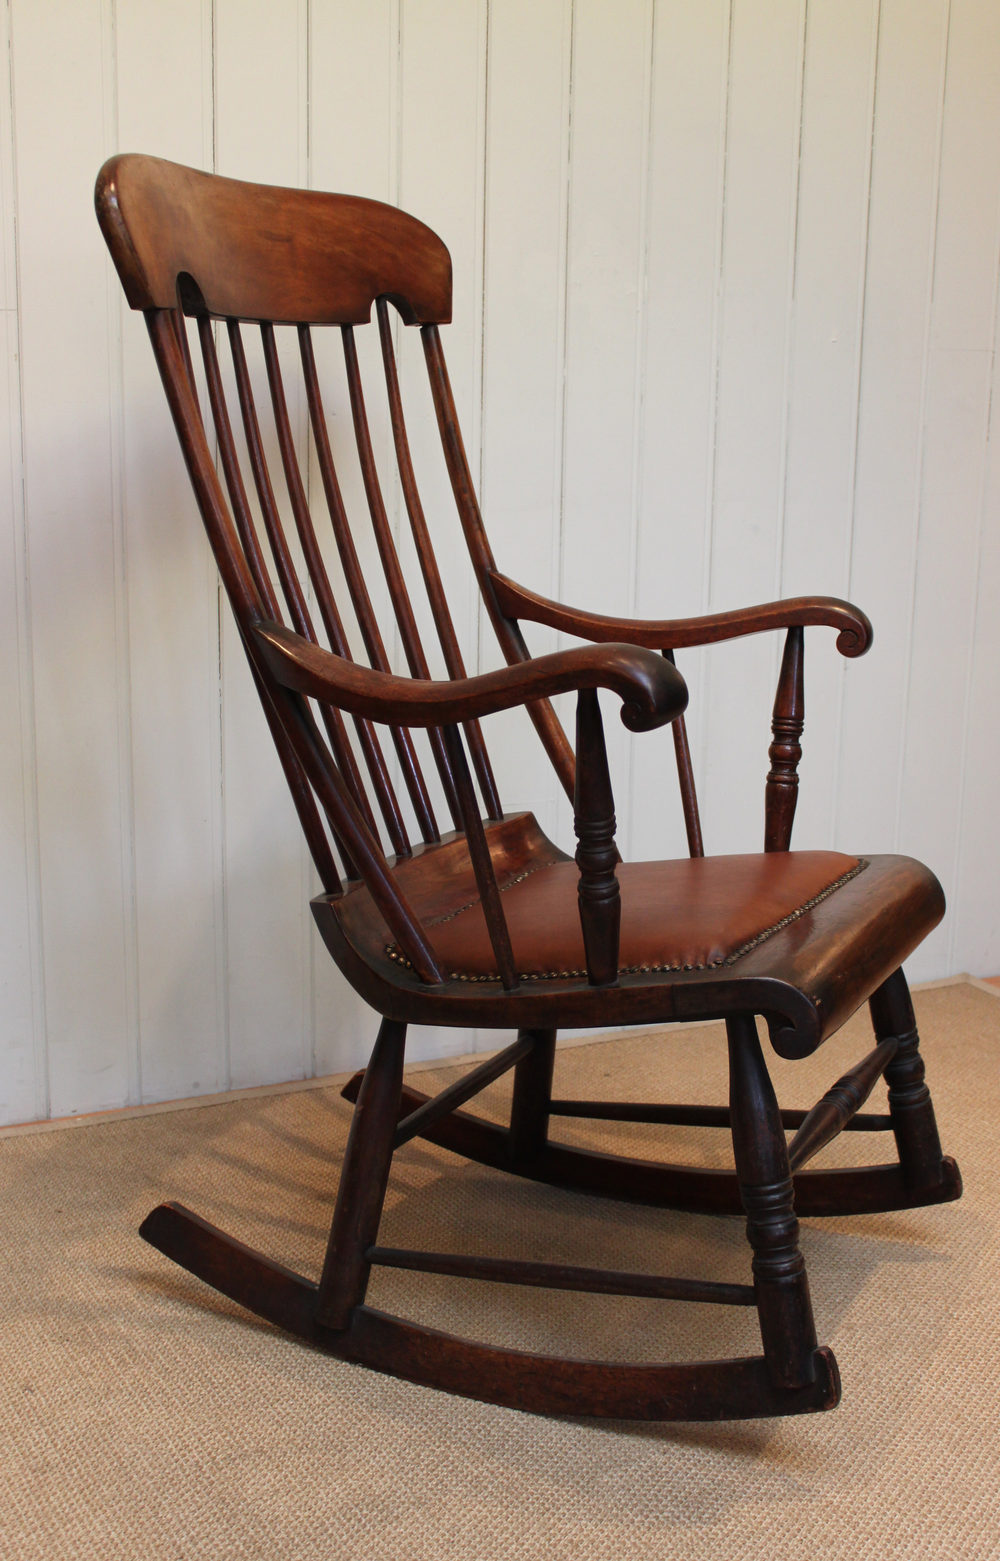 Victorian Fruitwood Rocking Chair - Antiques Atlas